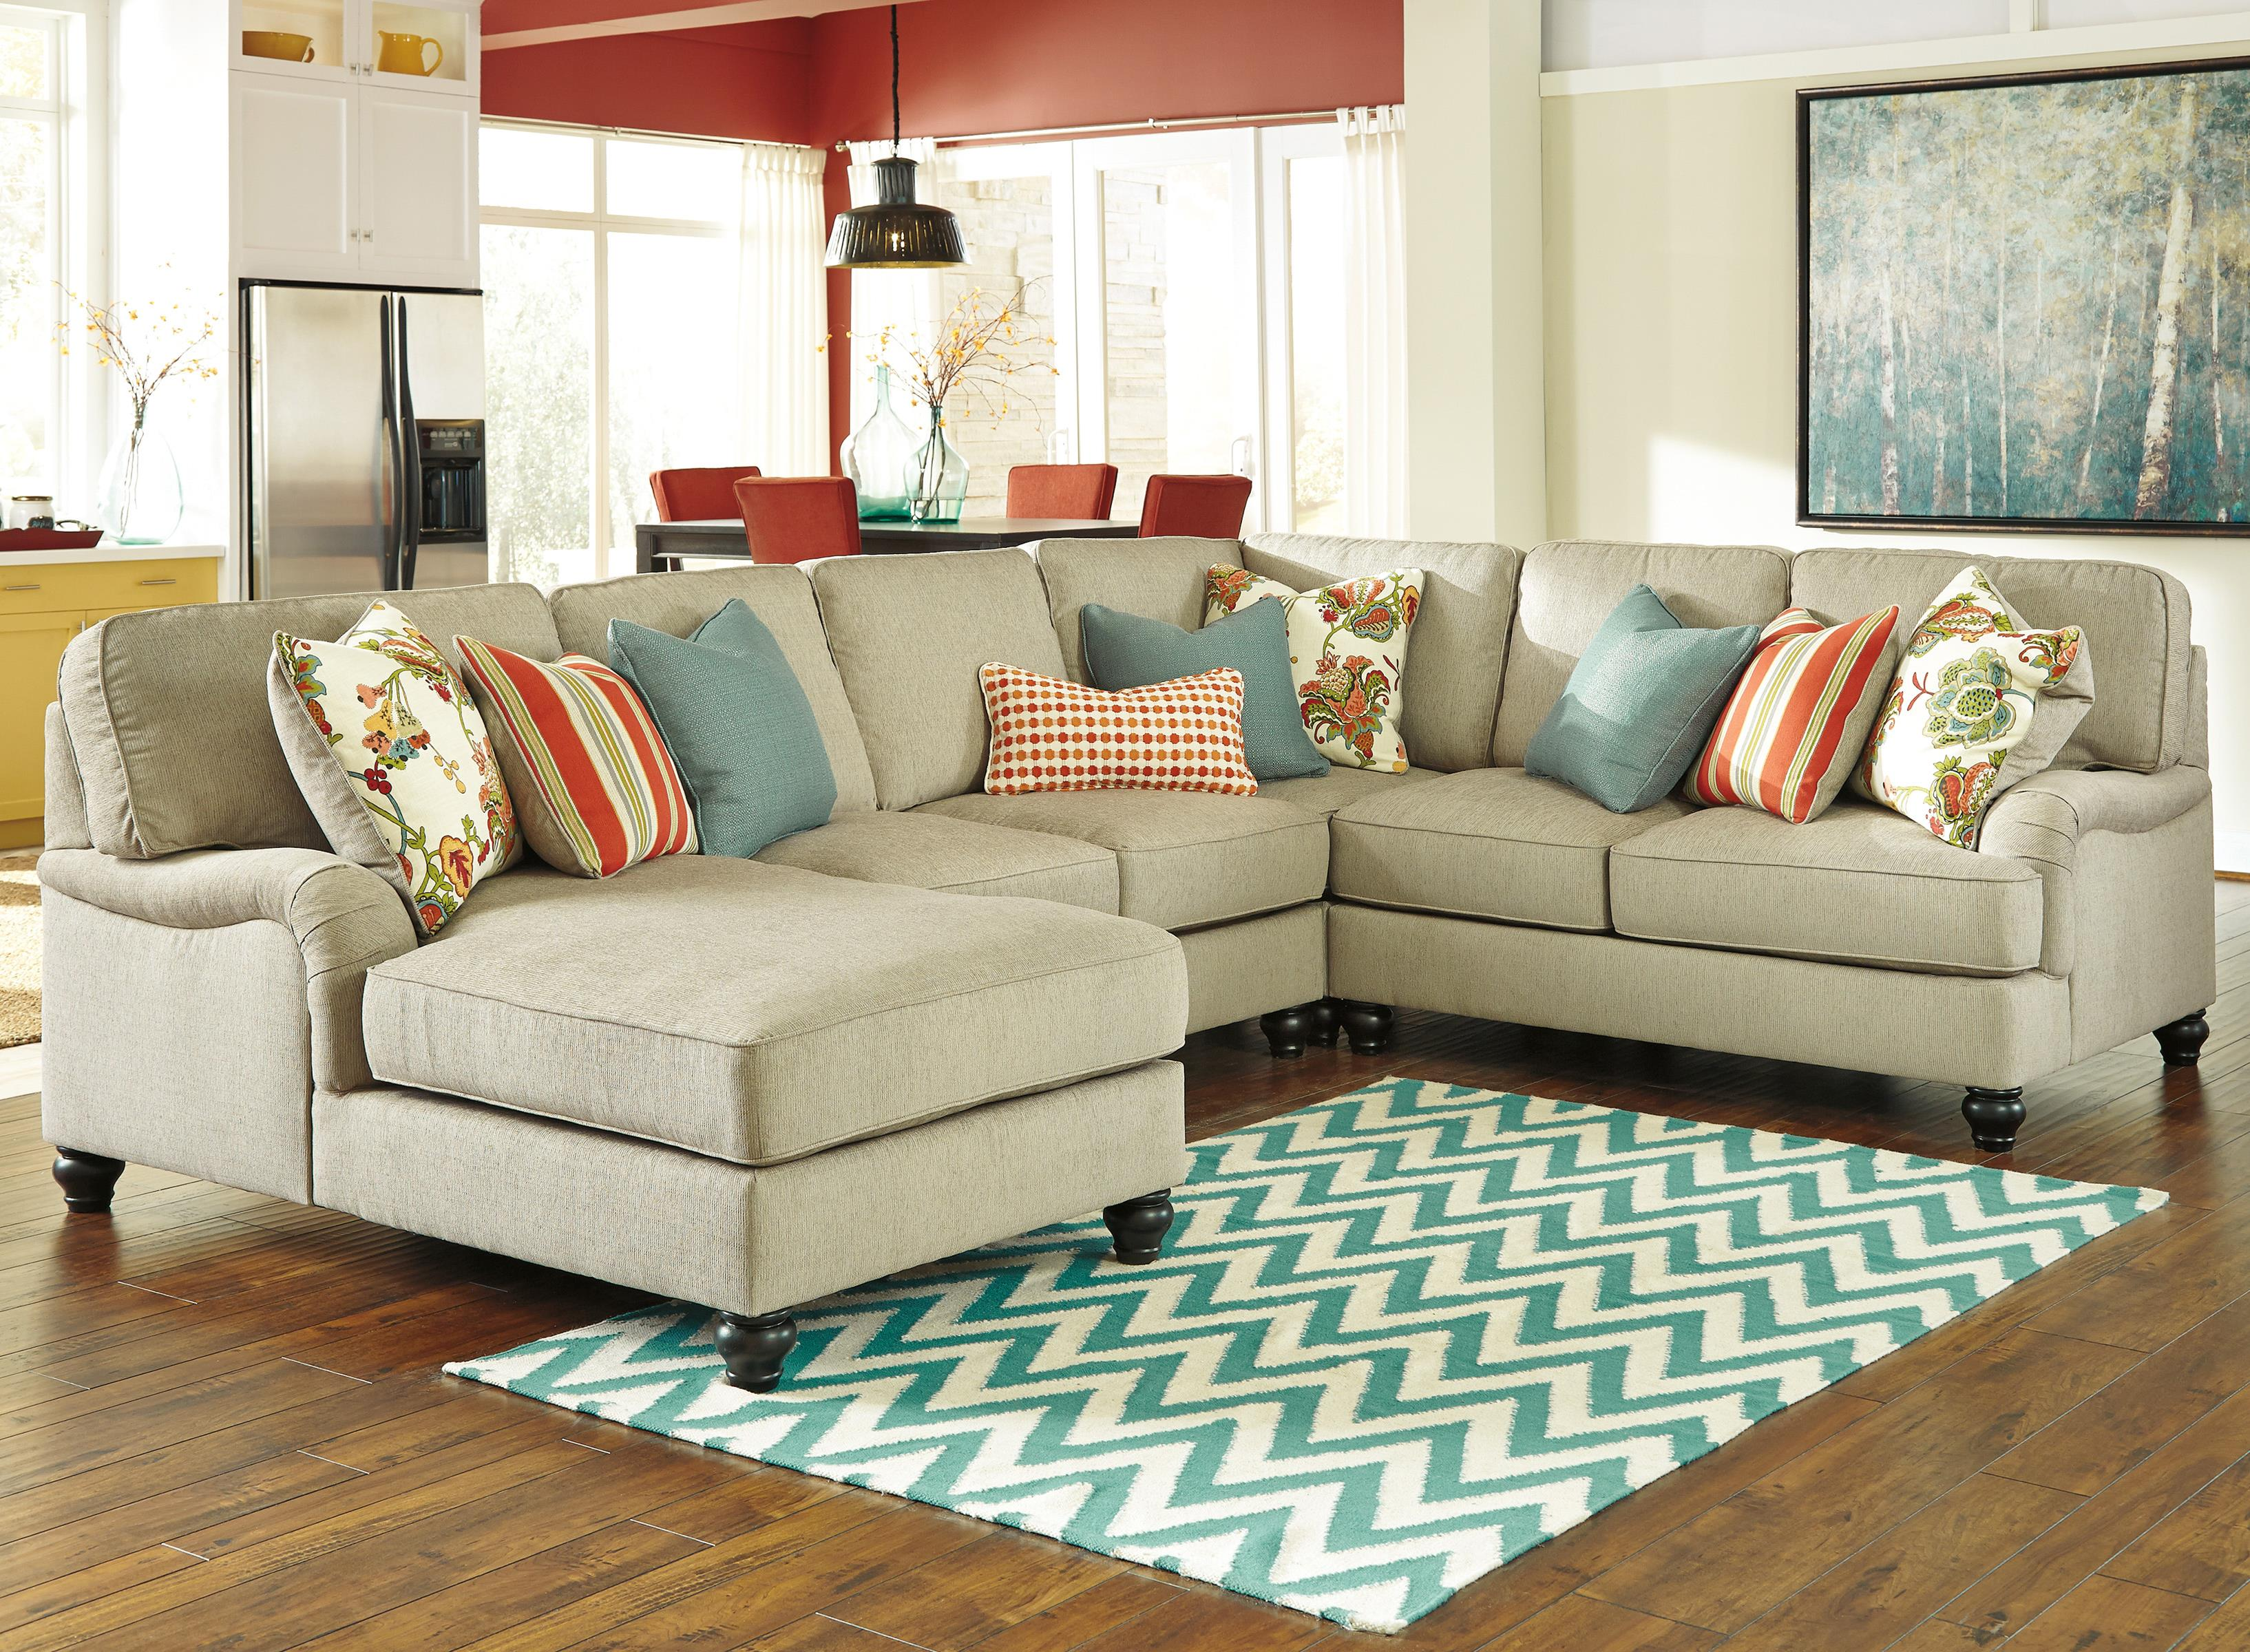 Benchcraft Kerridon 4-Piece Sectional with Left Chaise - Item Number: 2630016+34+77+56